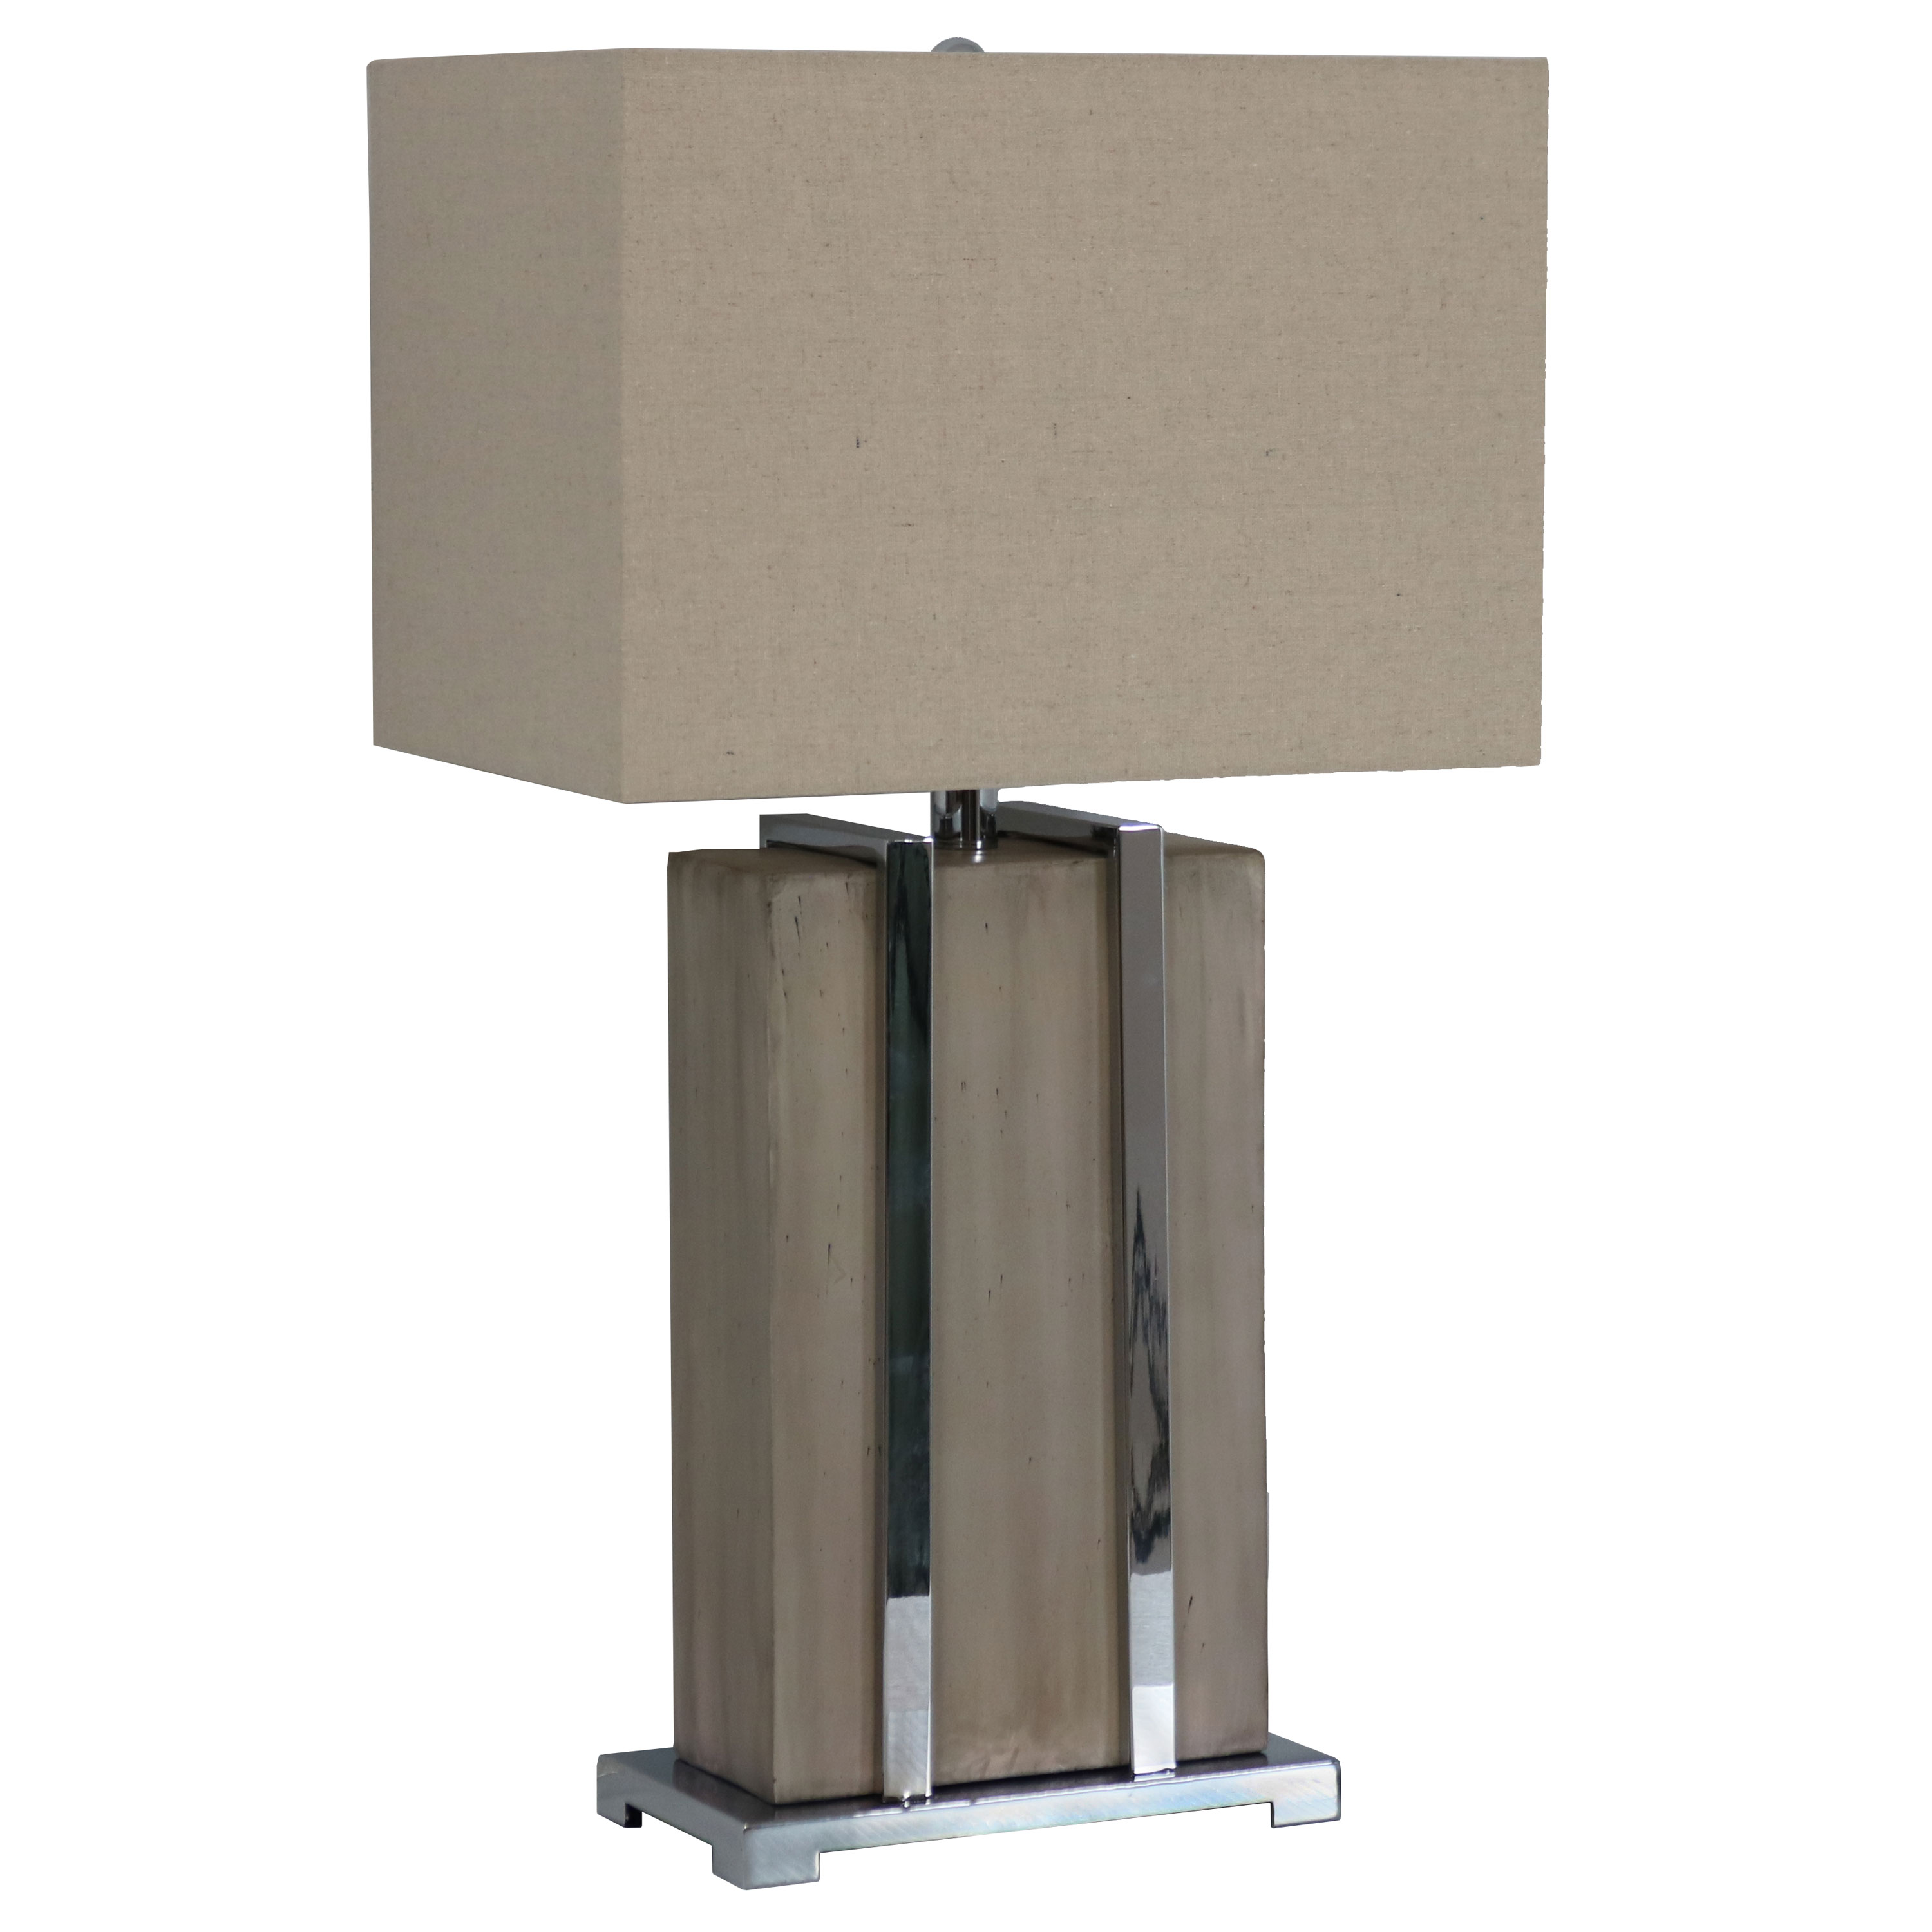 Table Lamp Industrial Inspired Concrete Base Chrome Detailing Lampshade Photo